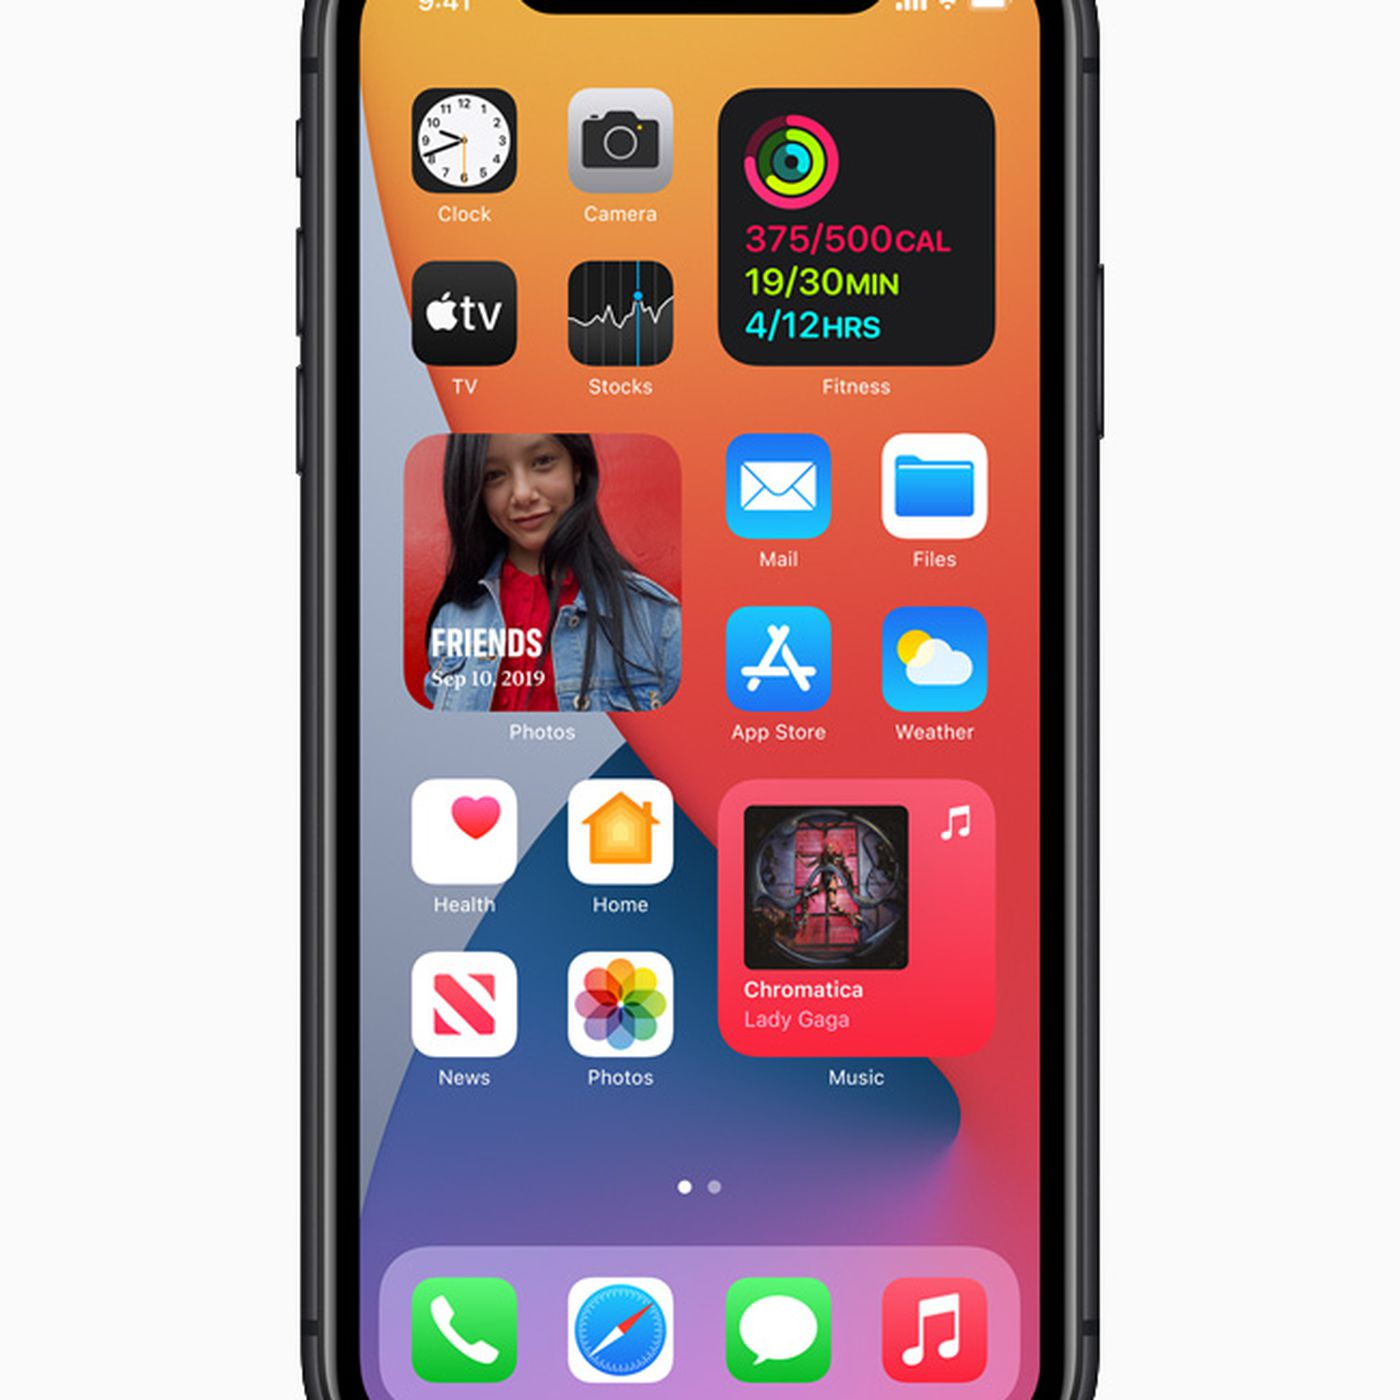 How To Personalize Your Iphone Ios 14 Home Screen With Widgets Vox